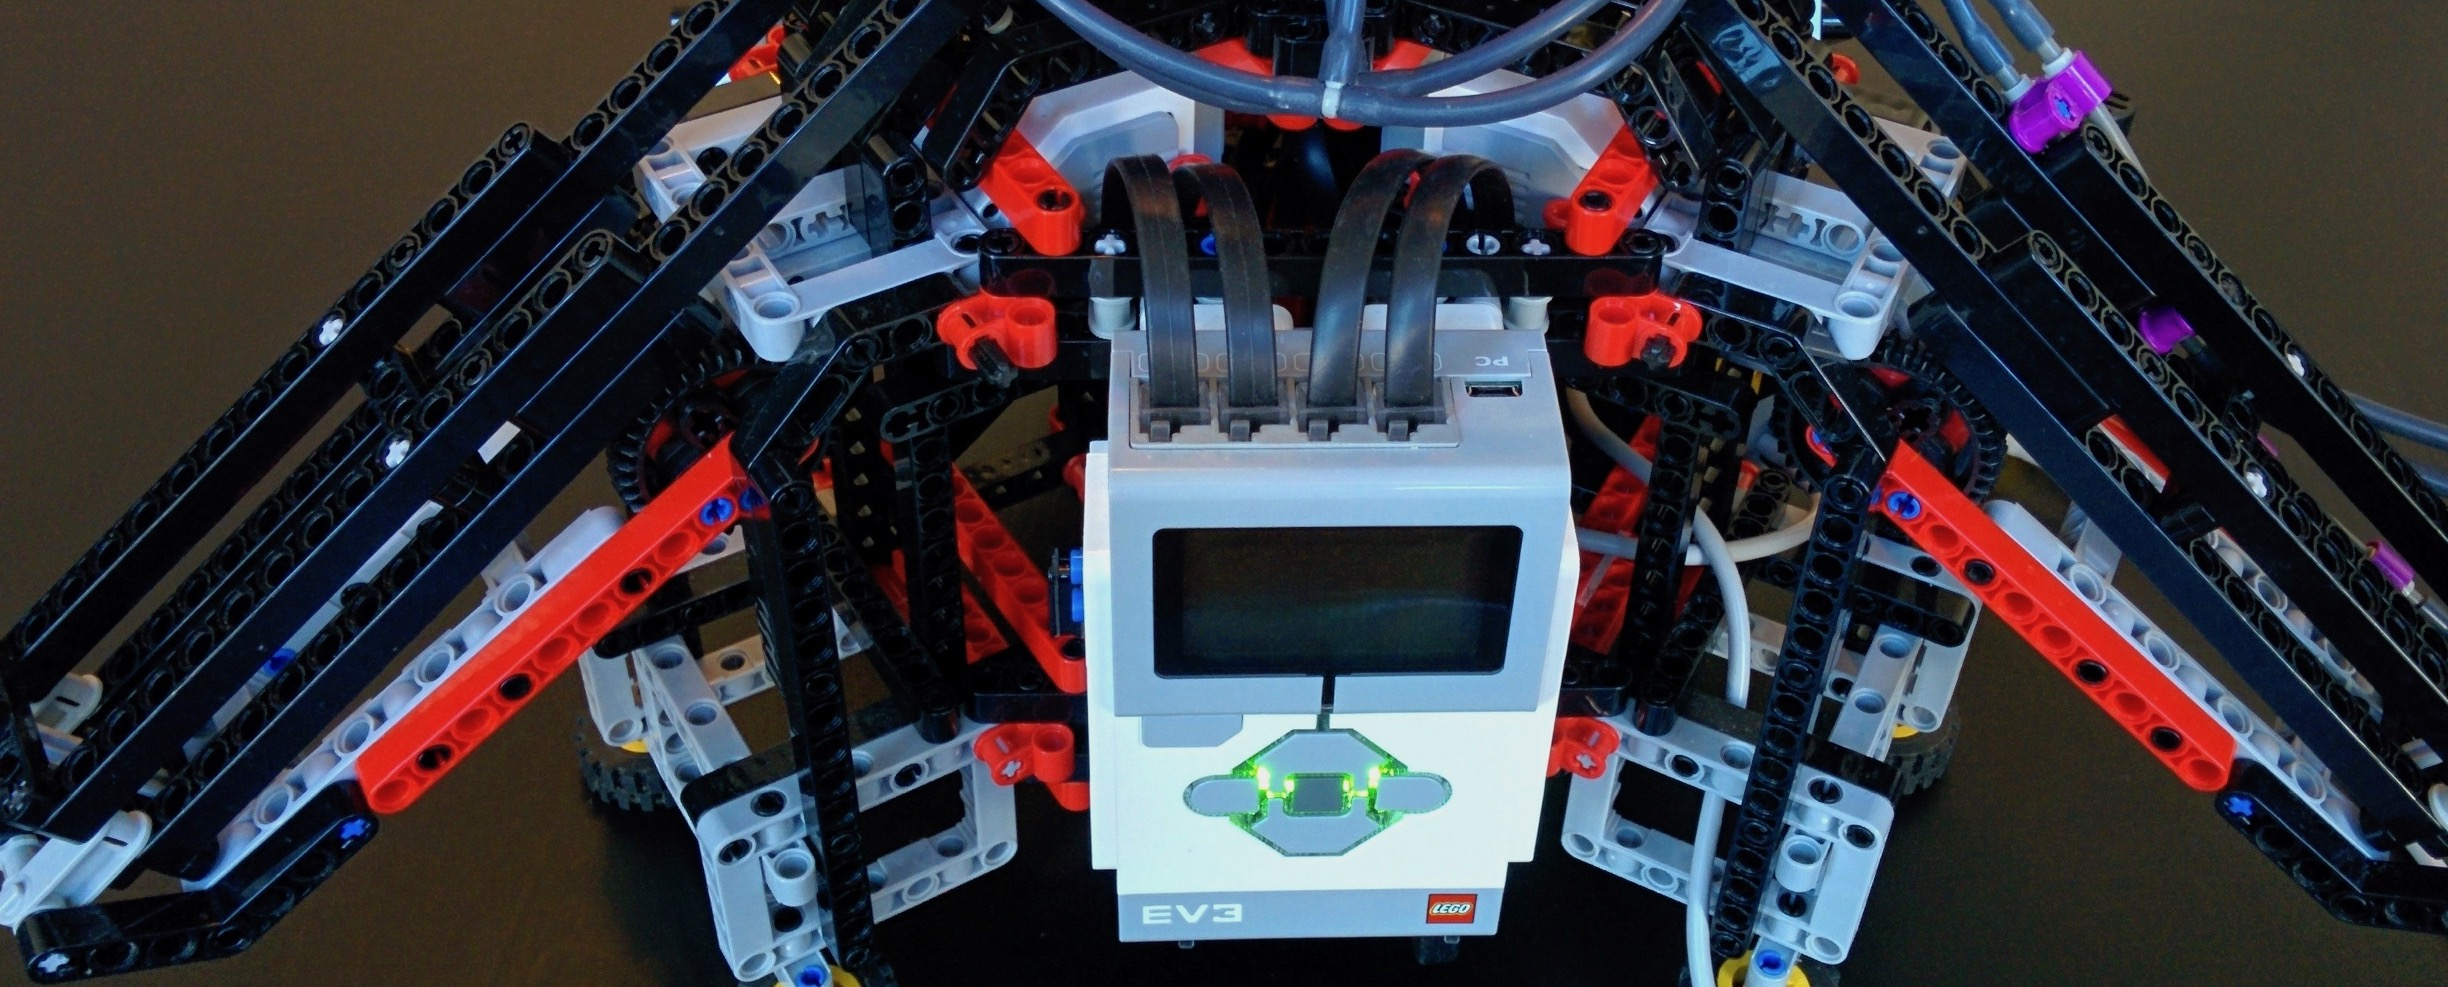 LEGO Mindstorms delta robot catching a ball using stereo vision